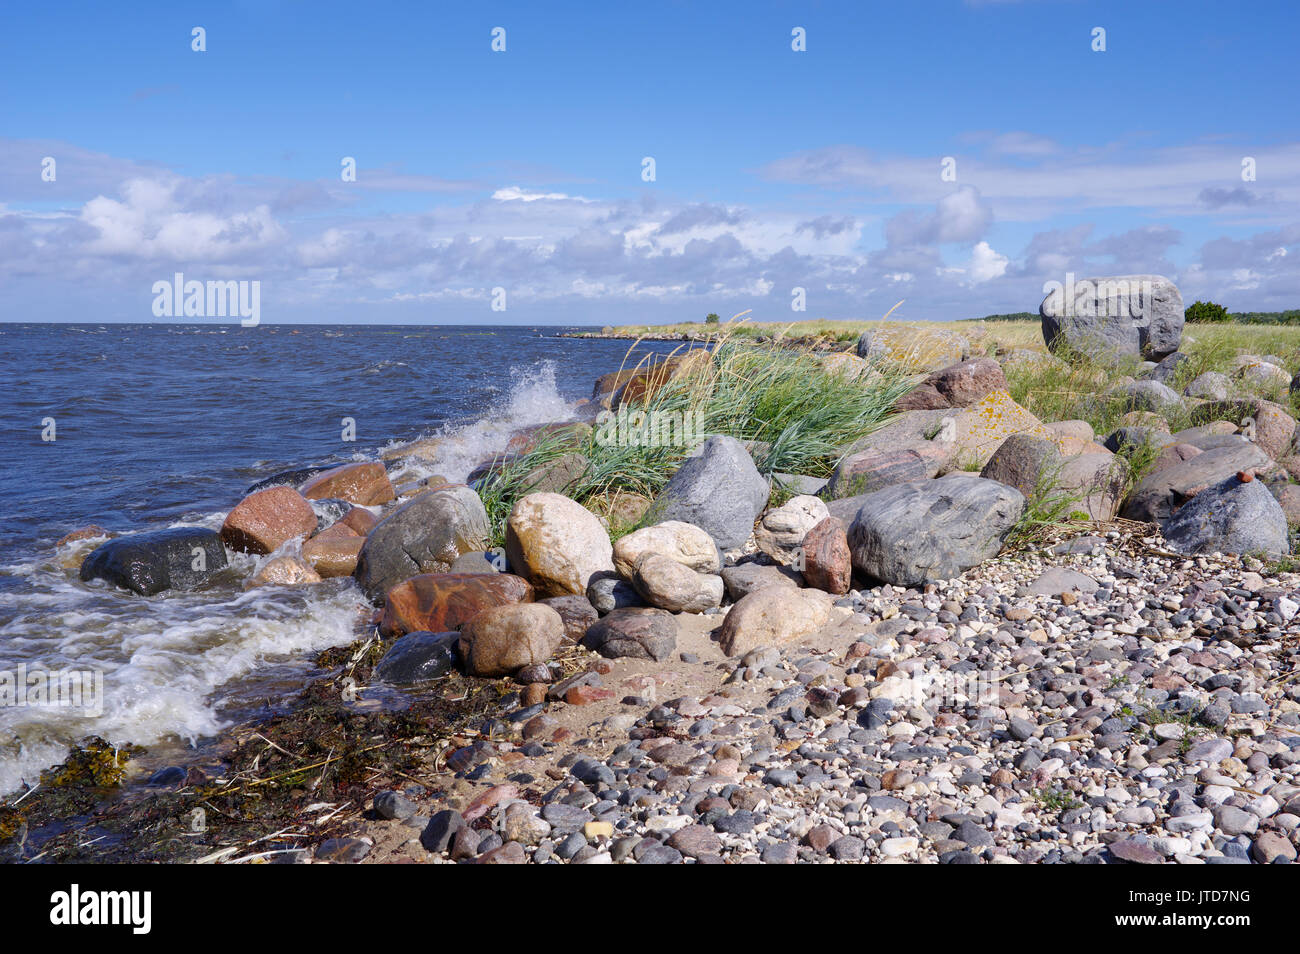 Kihnu coastline. Island Kihnu, Estonia, Baltic States, 5th August 2017 Stock Photo